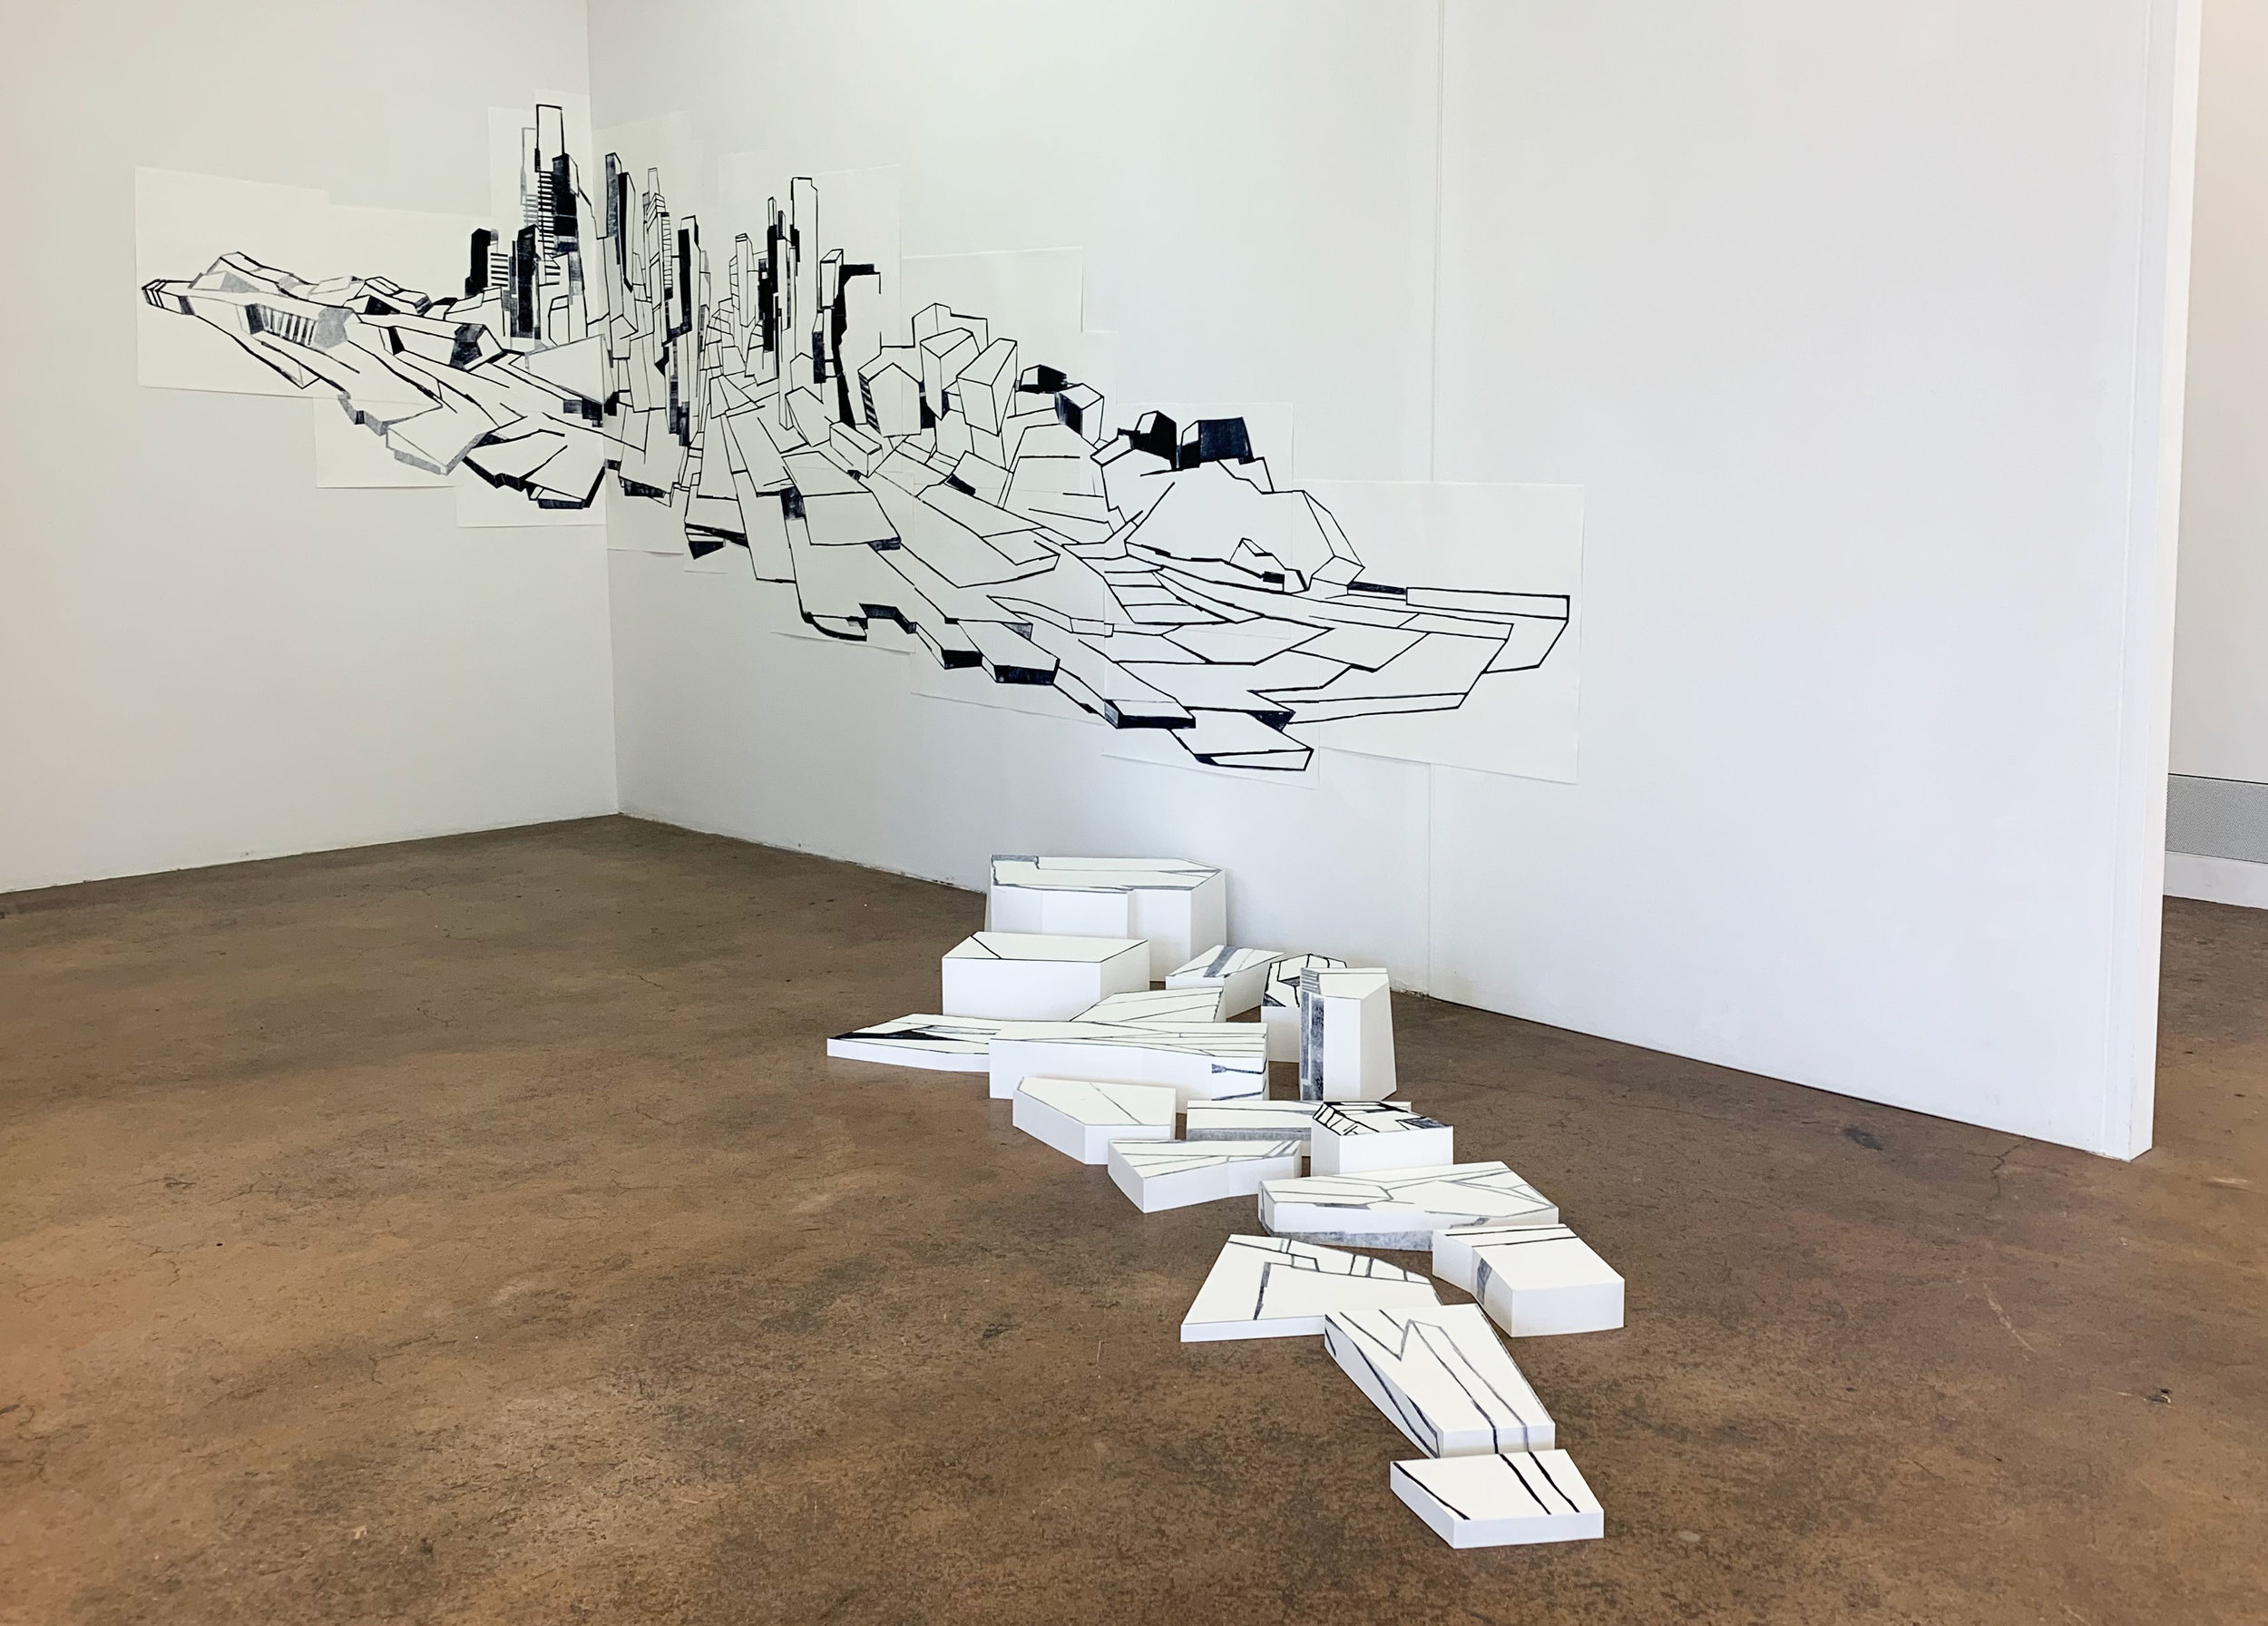 ///Barre Oblique / Collage made out of 20 monotypes and 3D Forms printed on Rives paper / 1.50x4.50 m / exhibition view at AKKU-Kunstplattform / 2018-19